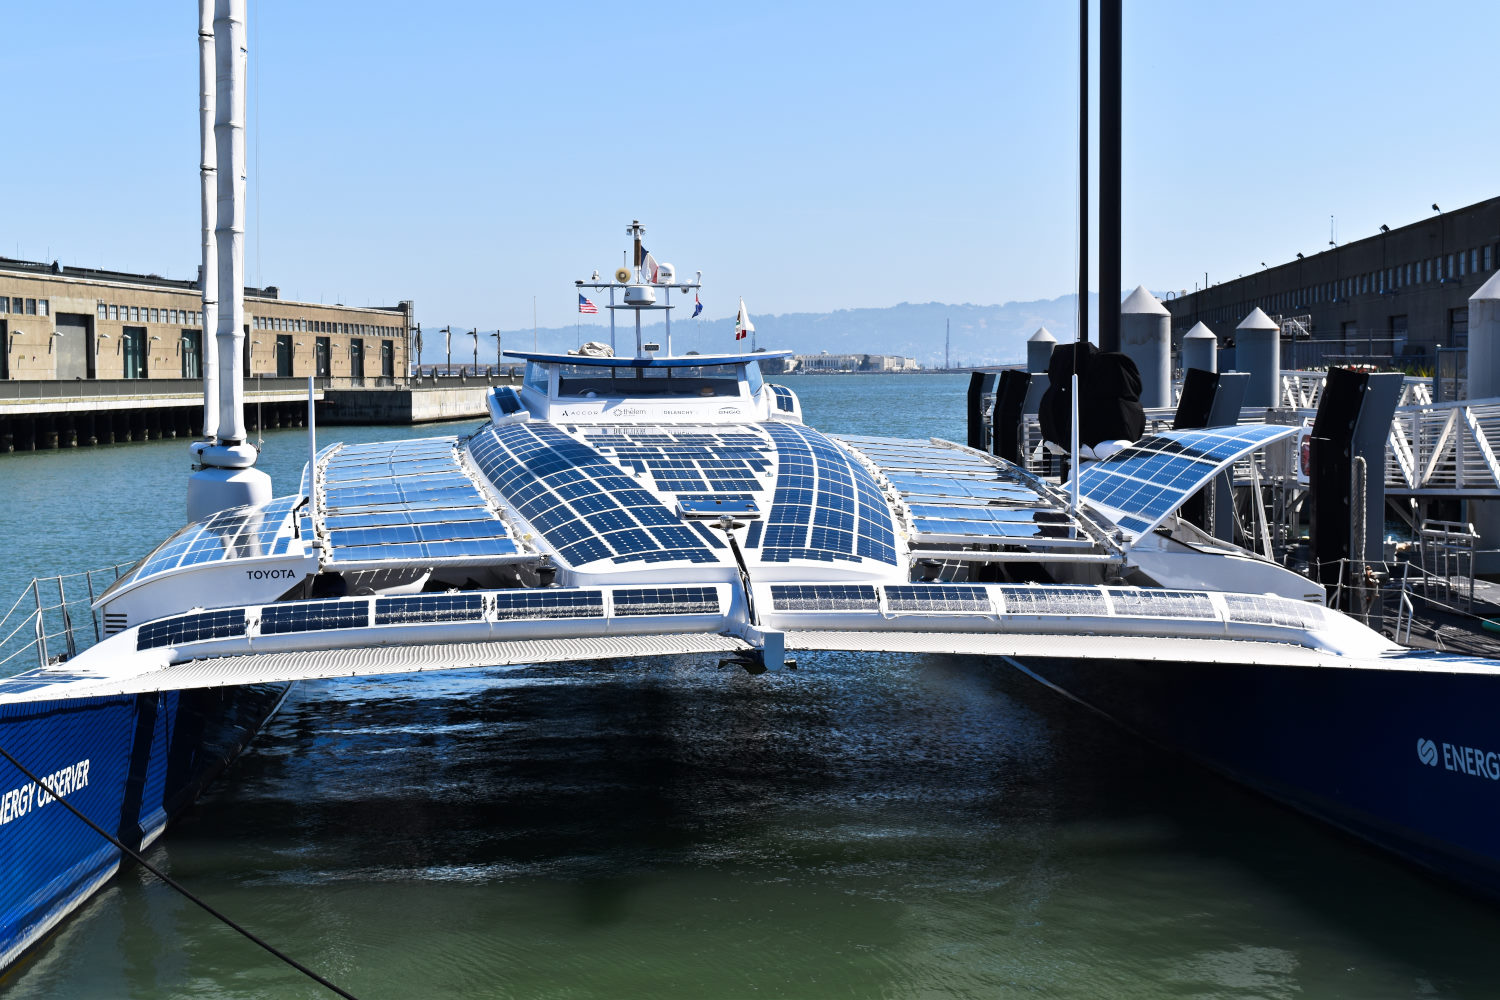 Th Energy Observer is on a global voyage to promote alternative energy sources. All images © Bruce Aldrich/2021